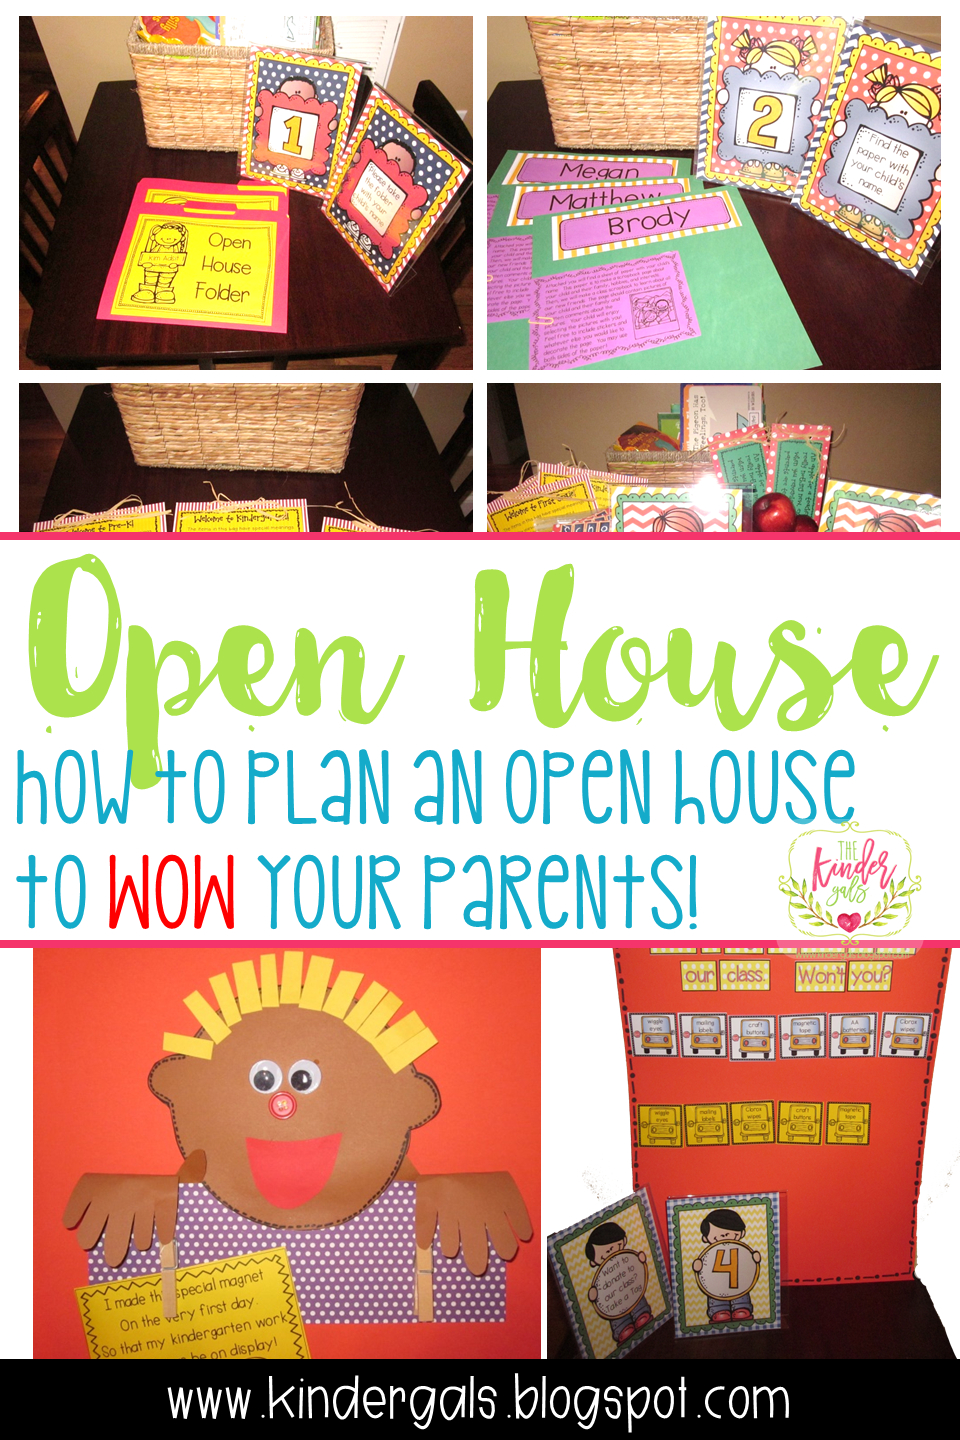 10 Lovely Kindergarten Back To School Night Ideas planning an open house to wow your parents kindergals preschool 2020